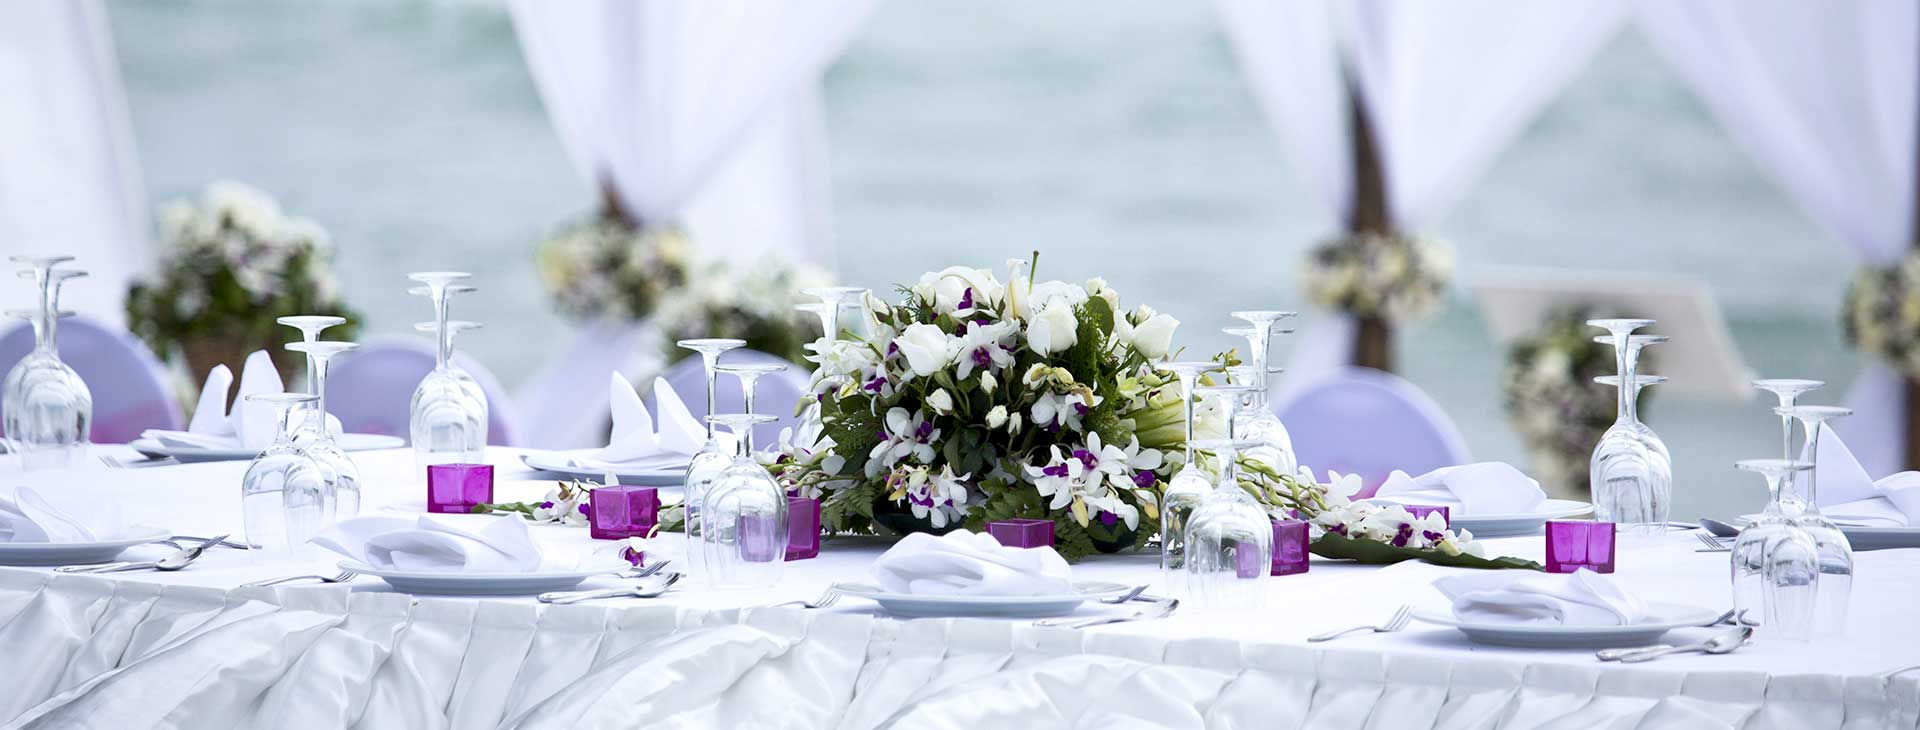 weddings in thailand koh samui phuket with professional